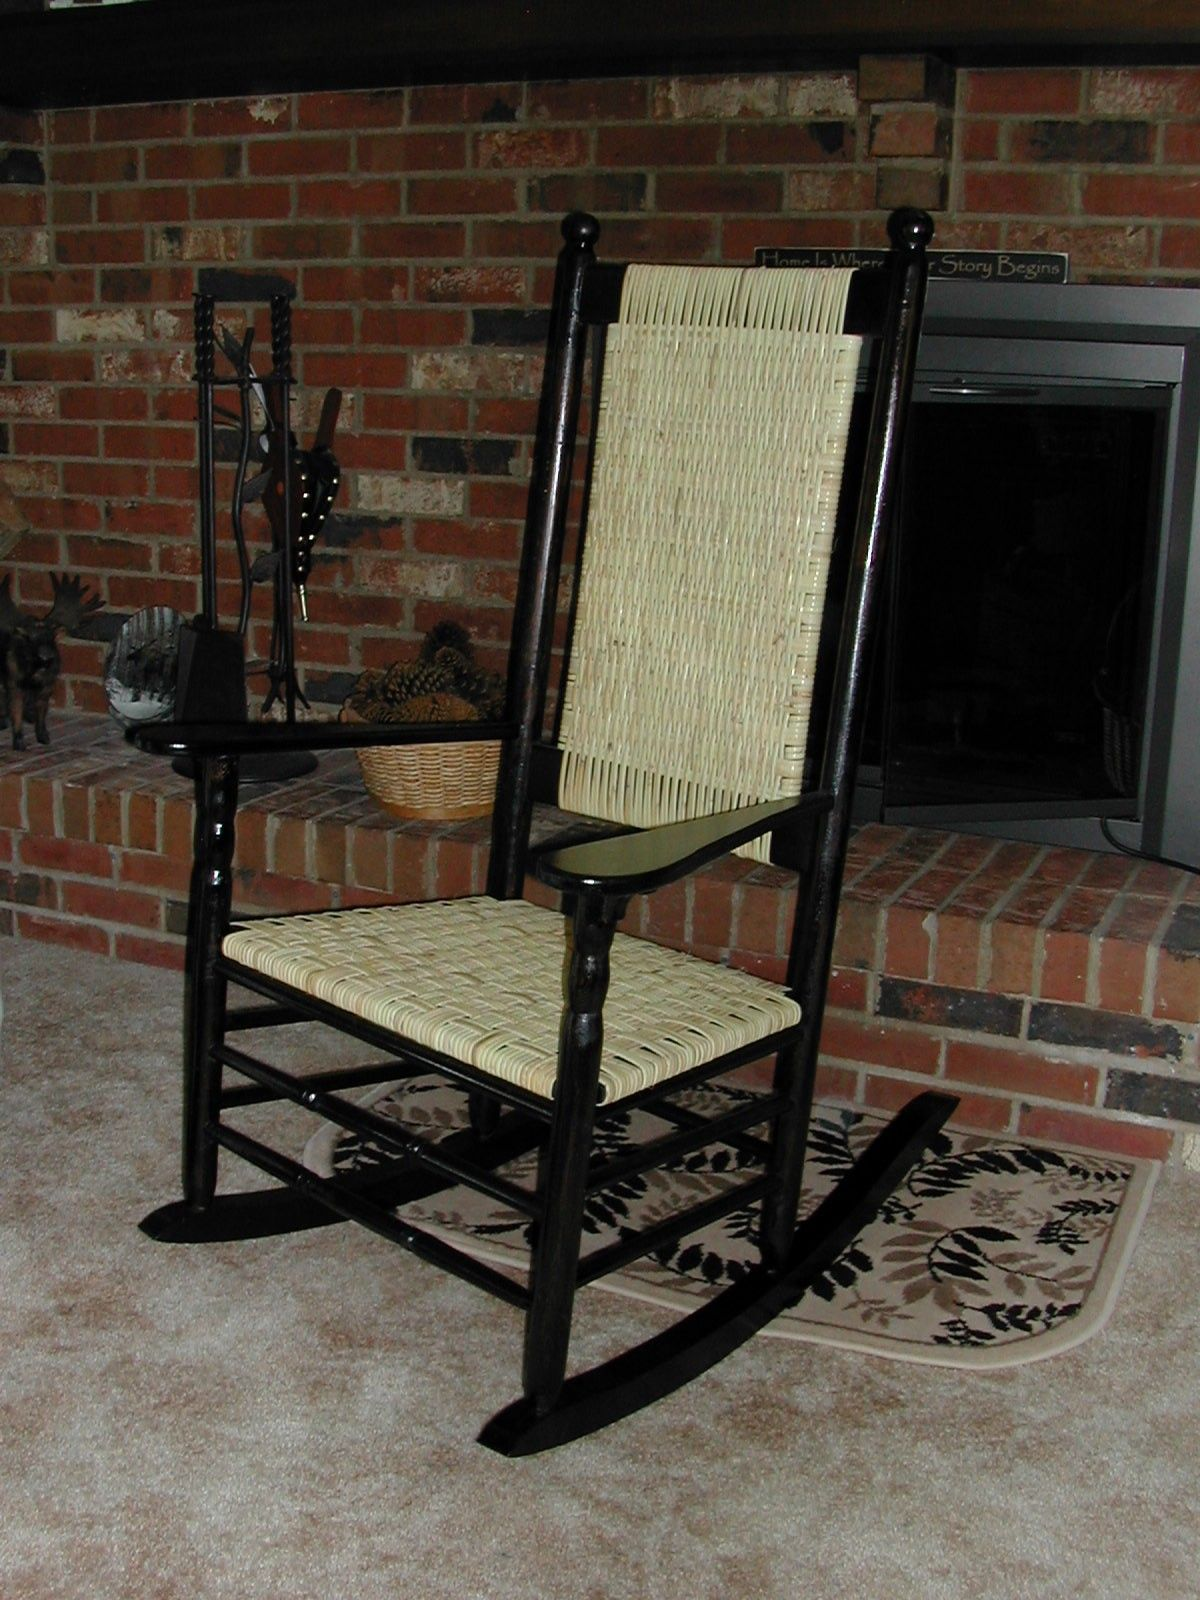 I created this Kennedy Rocker using a copy of vintage plans of the